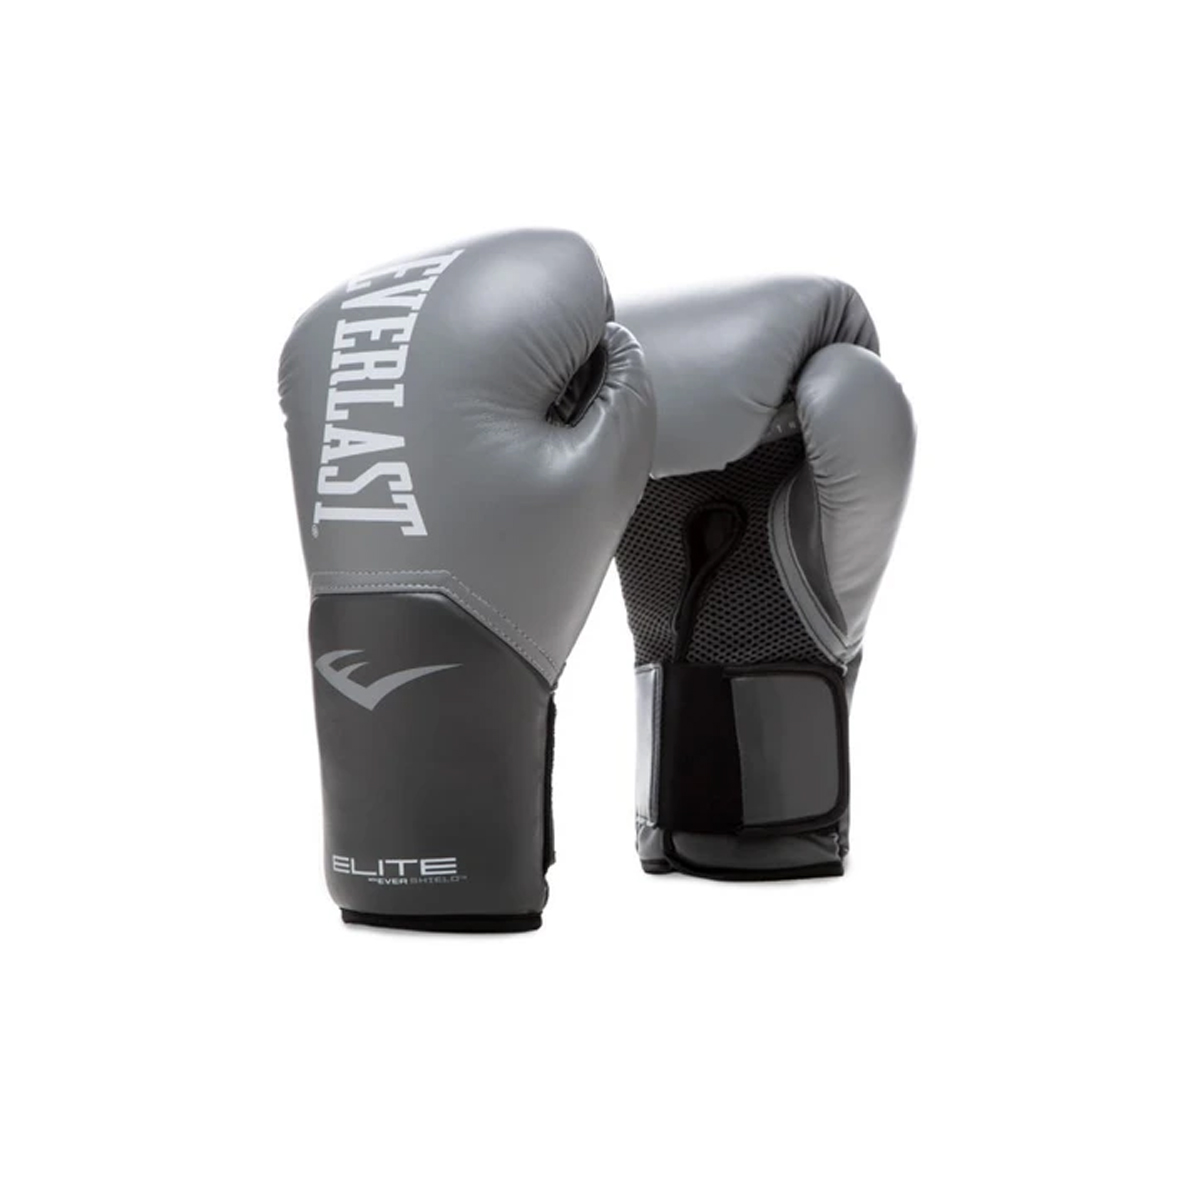 Pro-Style Elite Boxing Gloves, Gray, swatch